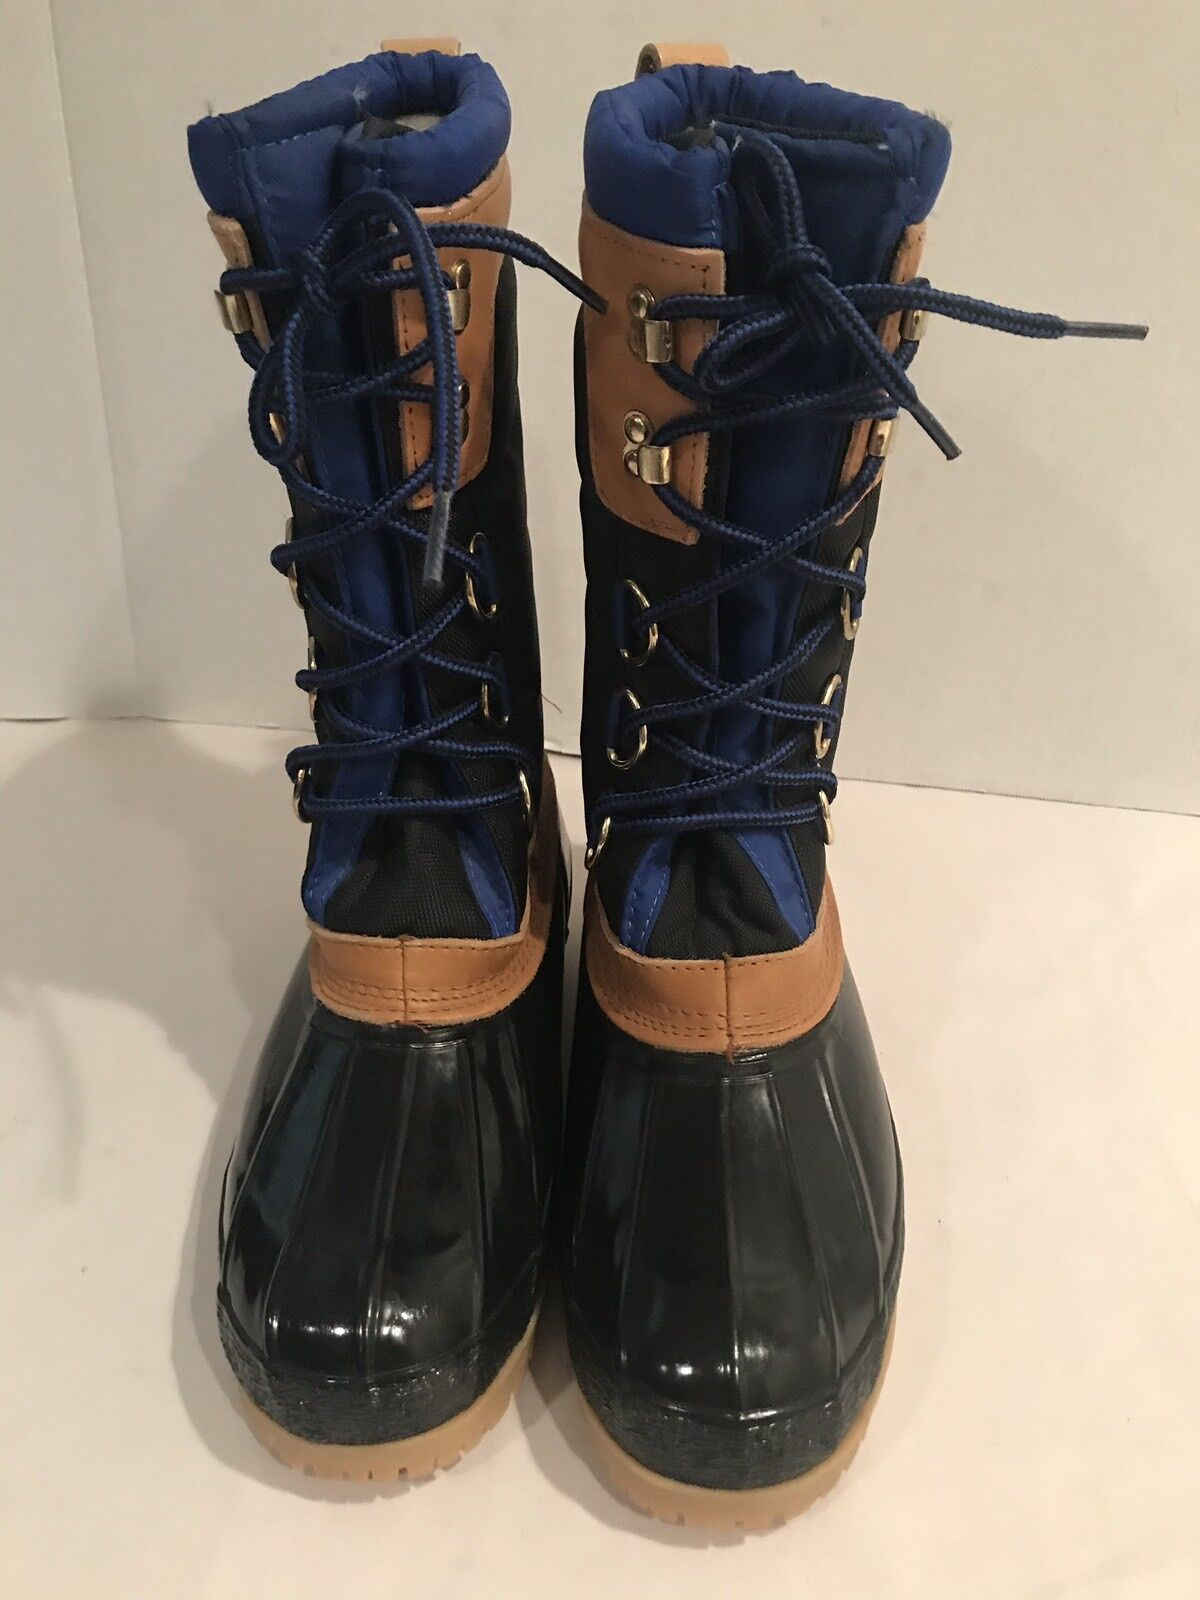 REI Women's Leather Boots Size 7 Black Removable Removable Removable Liners Lace Up Winter 117 023 f52317